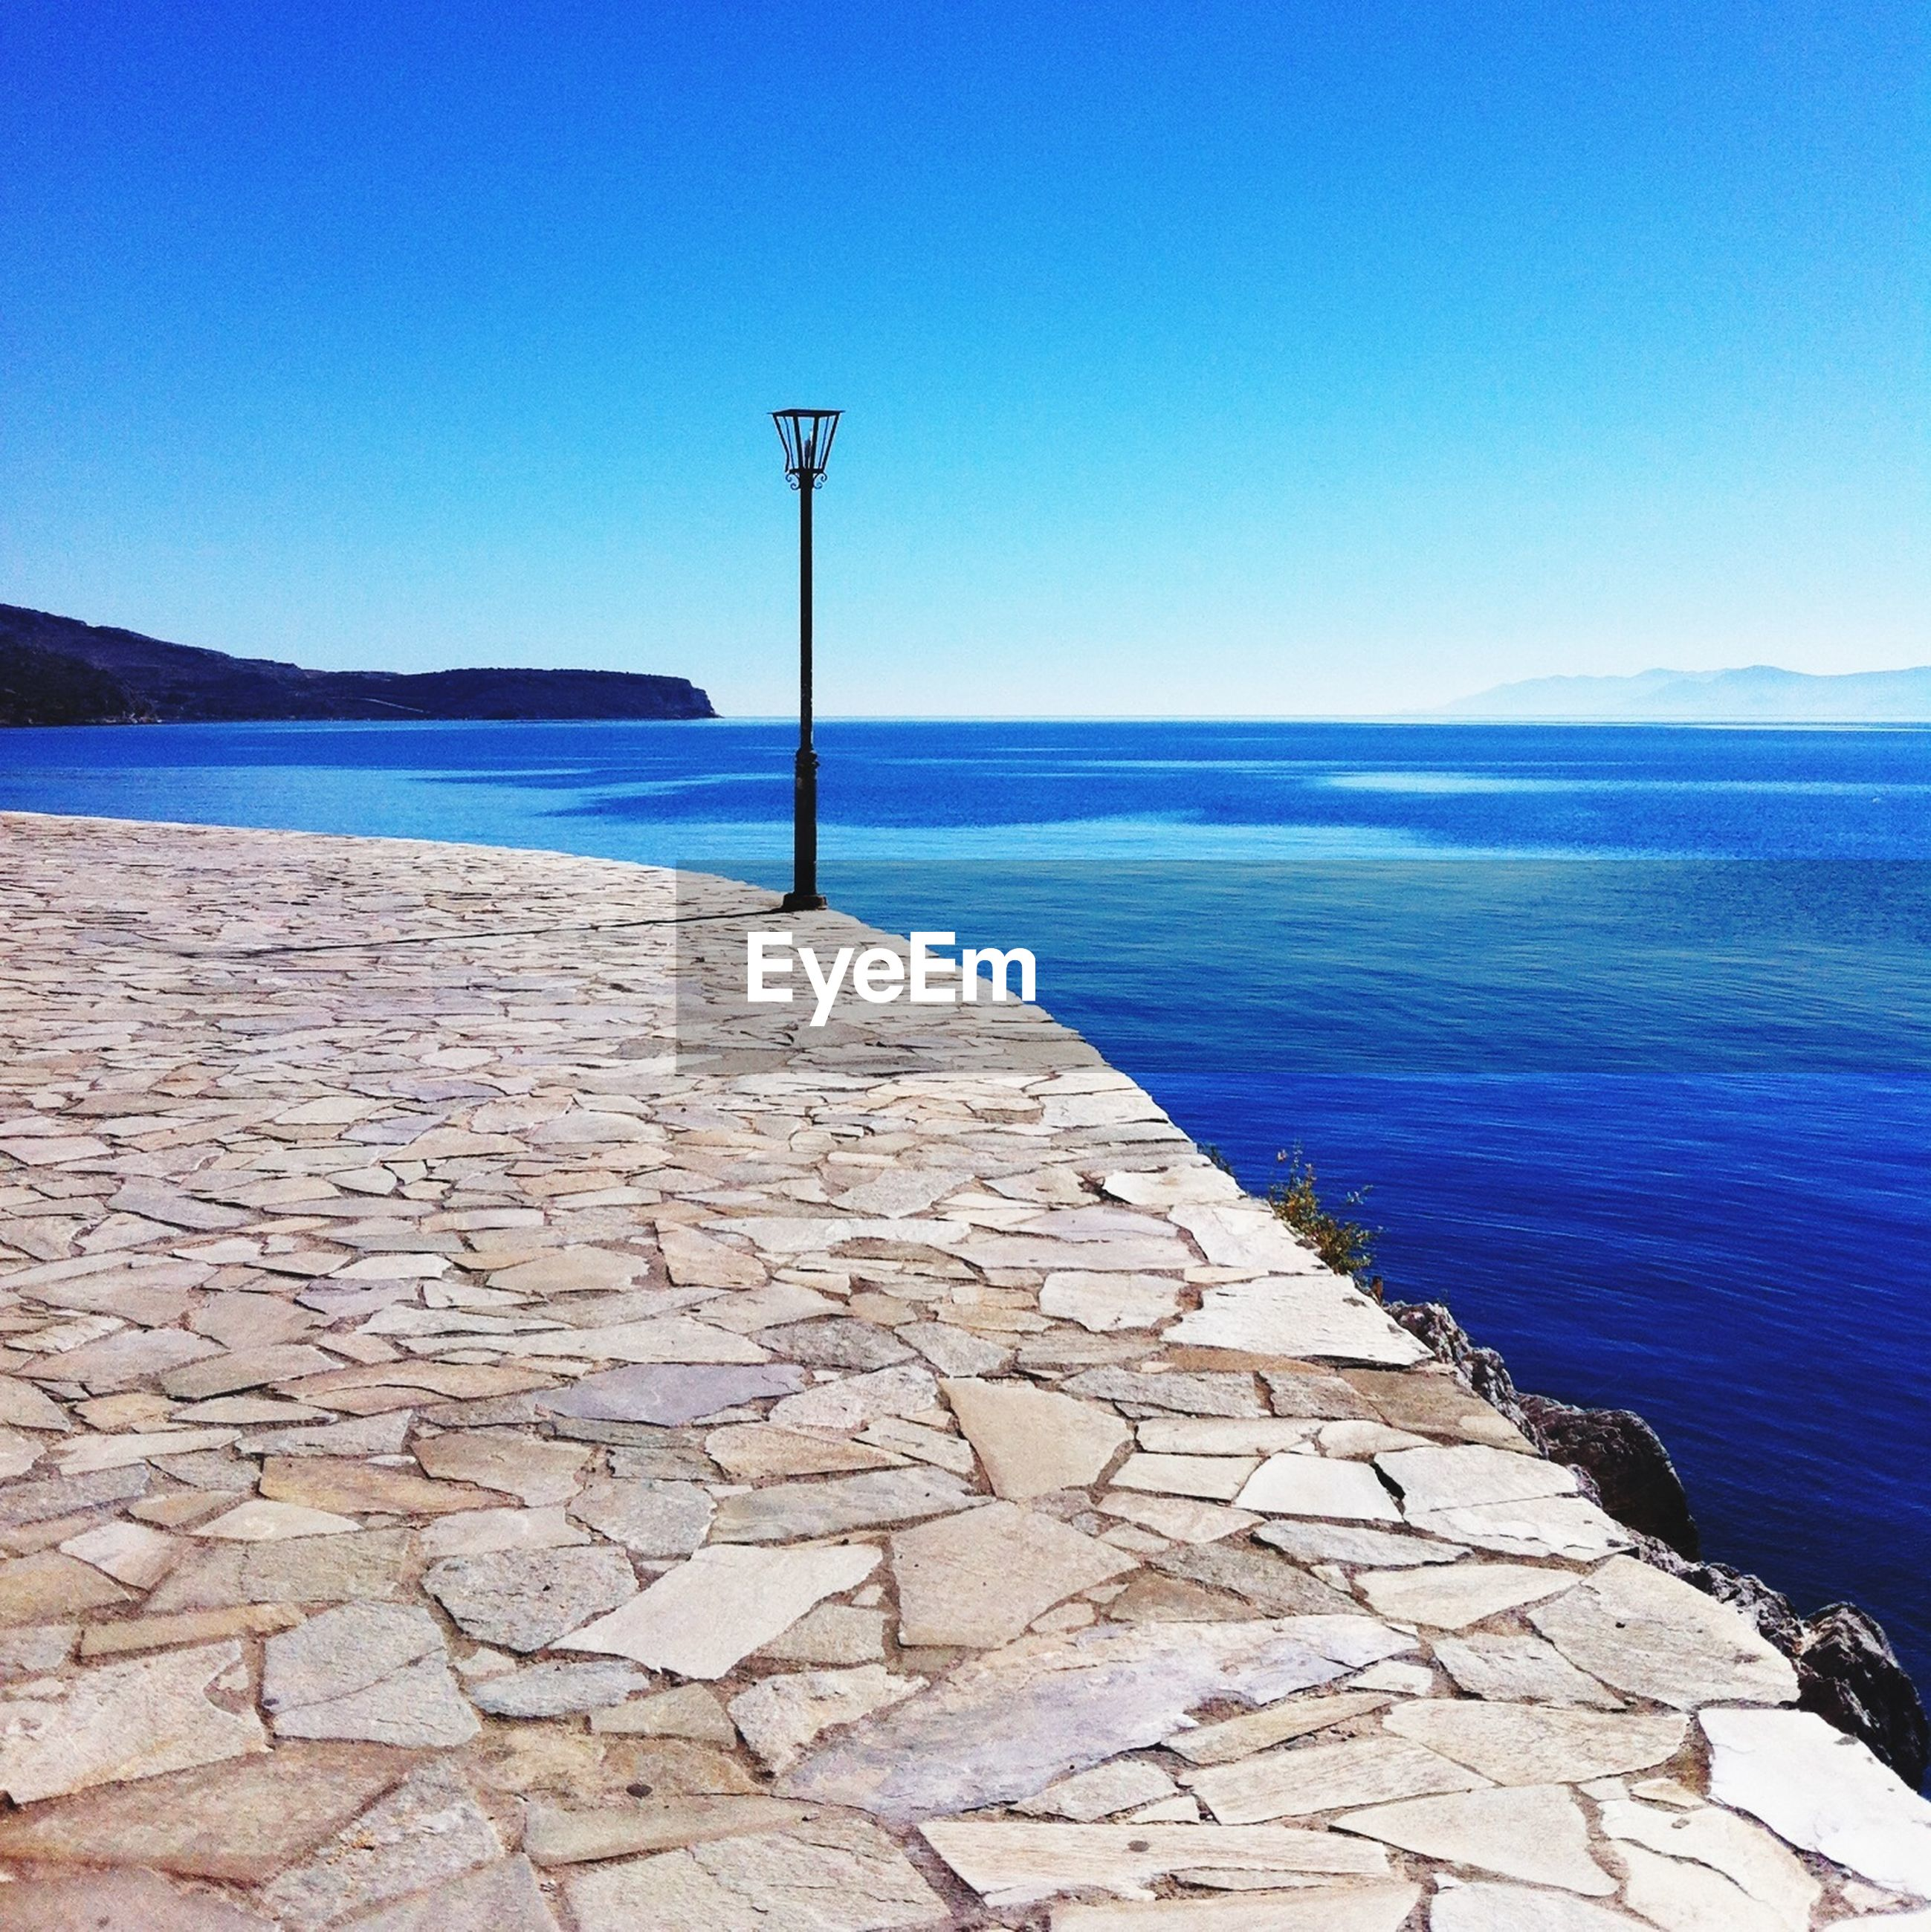 sea, water, horizon over water, blue, clear sky, tranquil scene, tranquility, copy space, scenics, beauty in nature, the way forward, street light, nature, sky, beach, idyllic, outdoors, sunlight, shore, empty